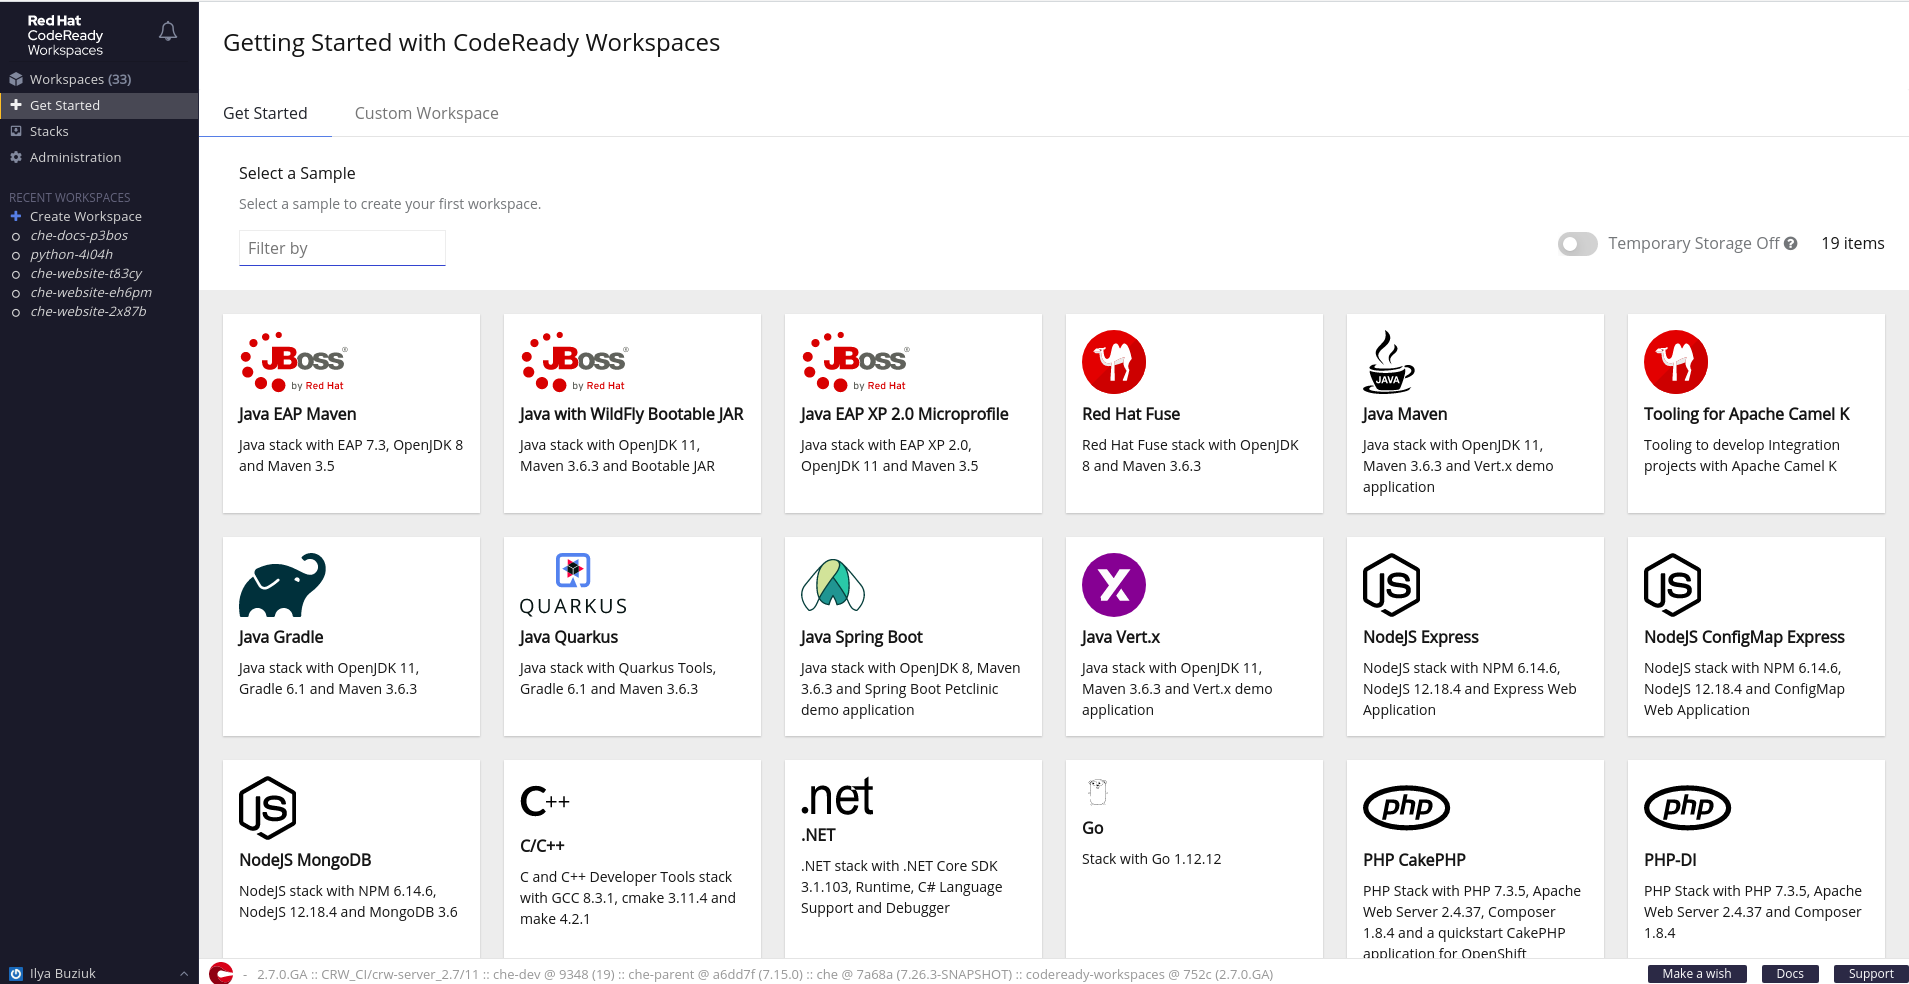 User Dashboard: Getting Started with CodeReady workspaces